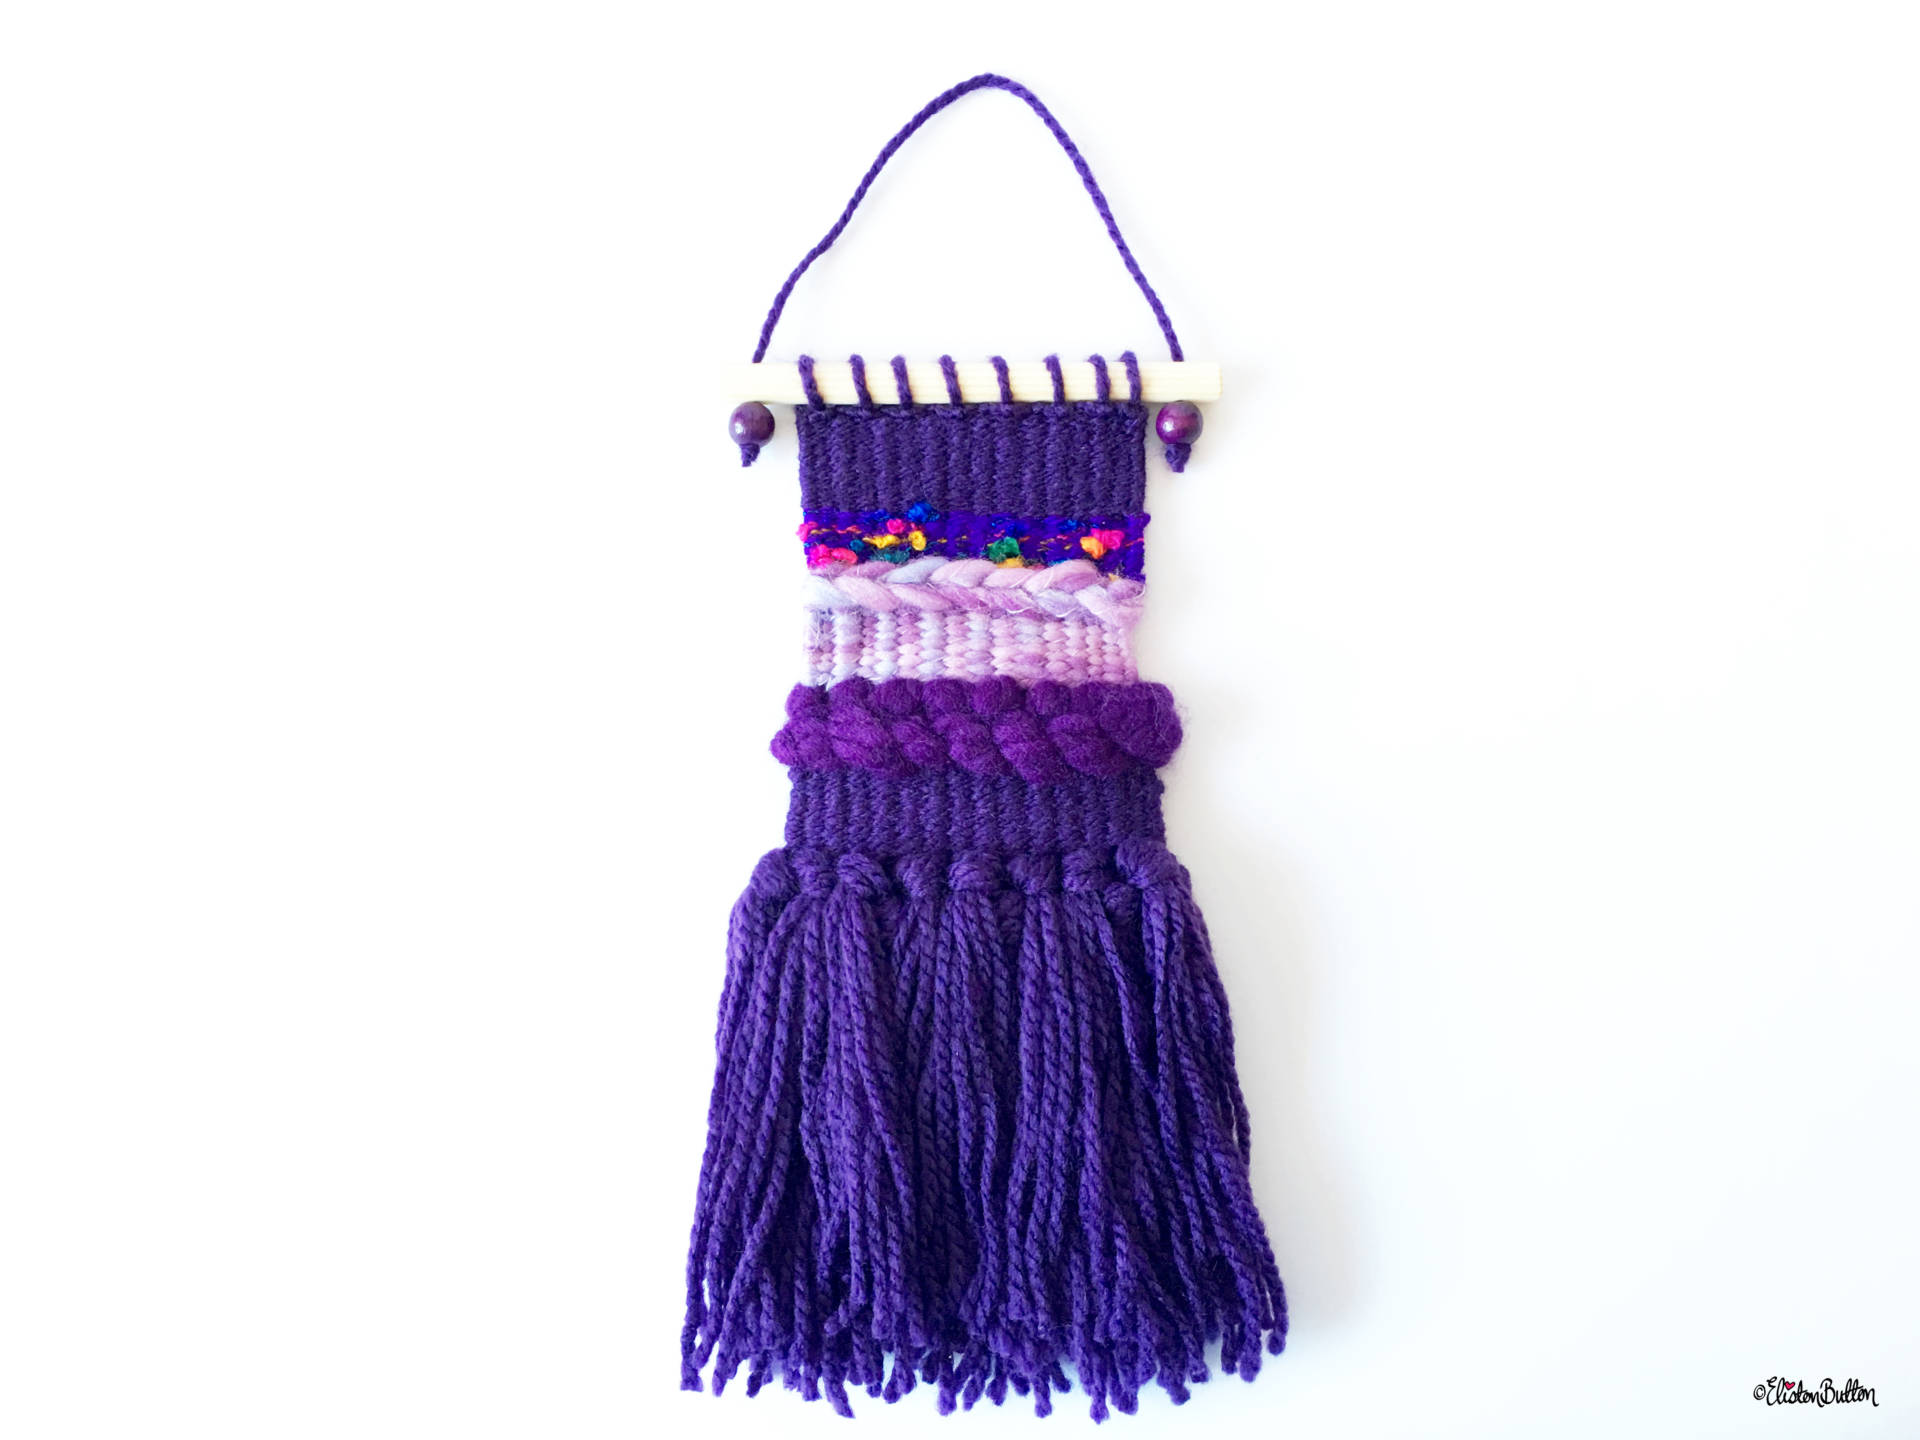 Purple and Pale Purple Mini Woven Wall Hanging in Full - Create 30 - No.2 - Mini Woven Wall Hangings at www.elistonbutton.com - Eliston Button - That Crafty Kid – Art, Design, Craft & Adventure.